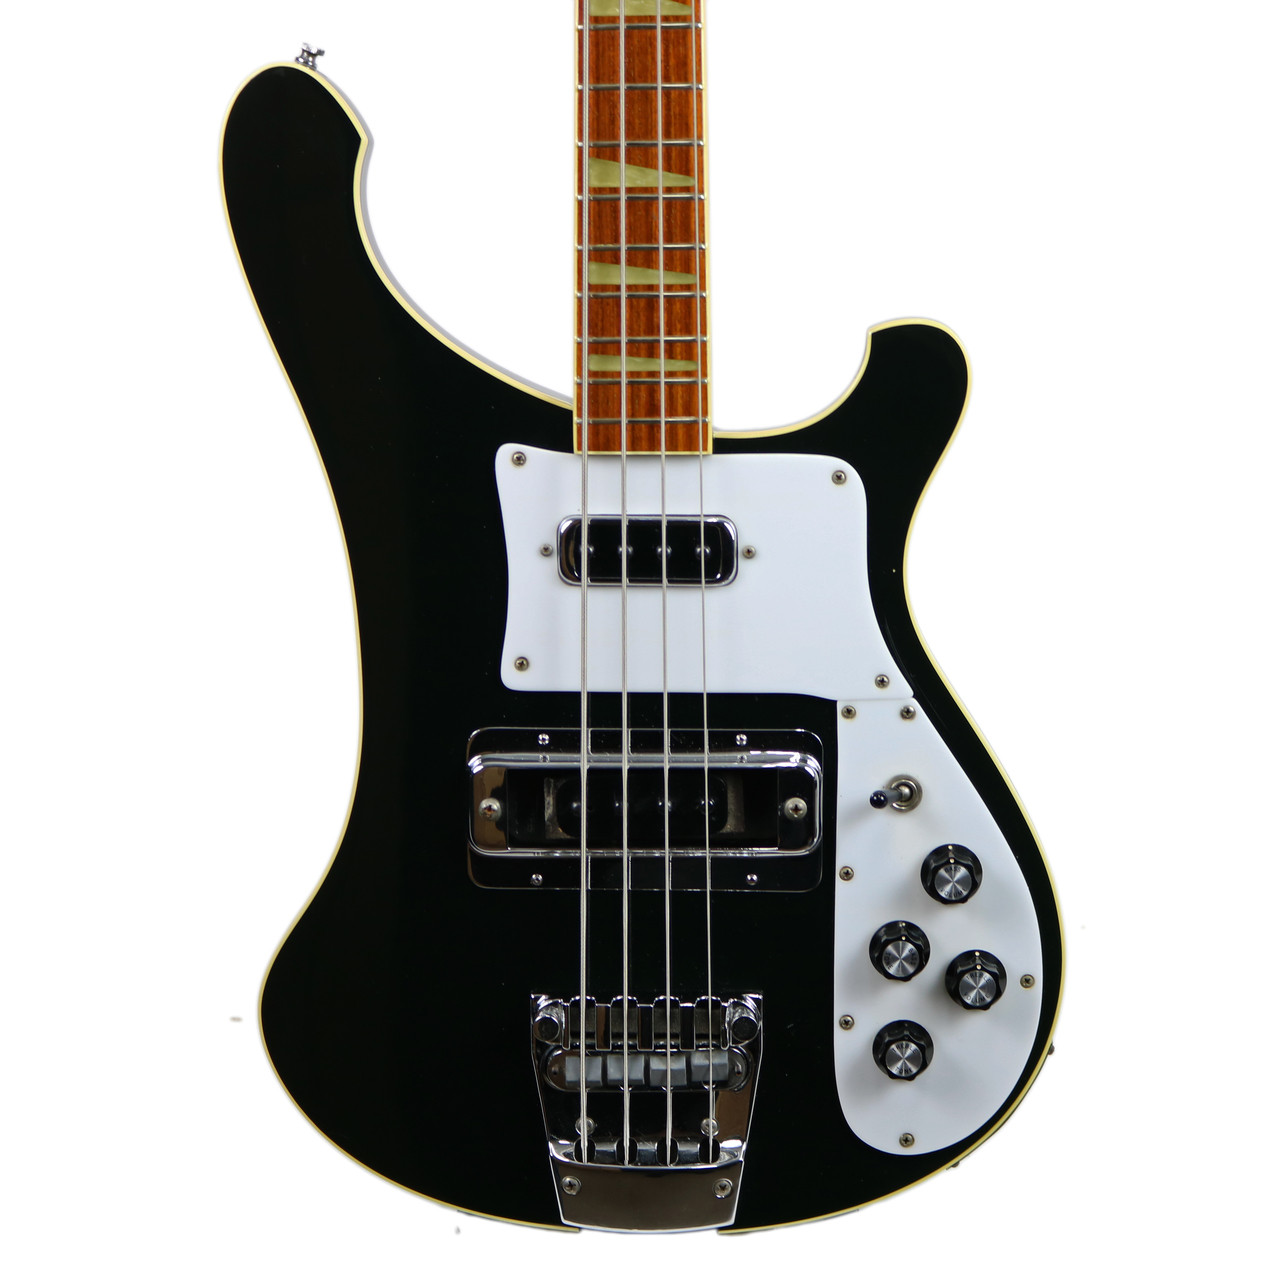 shop Vintage rickenbacker instruments